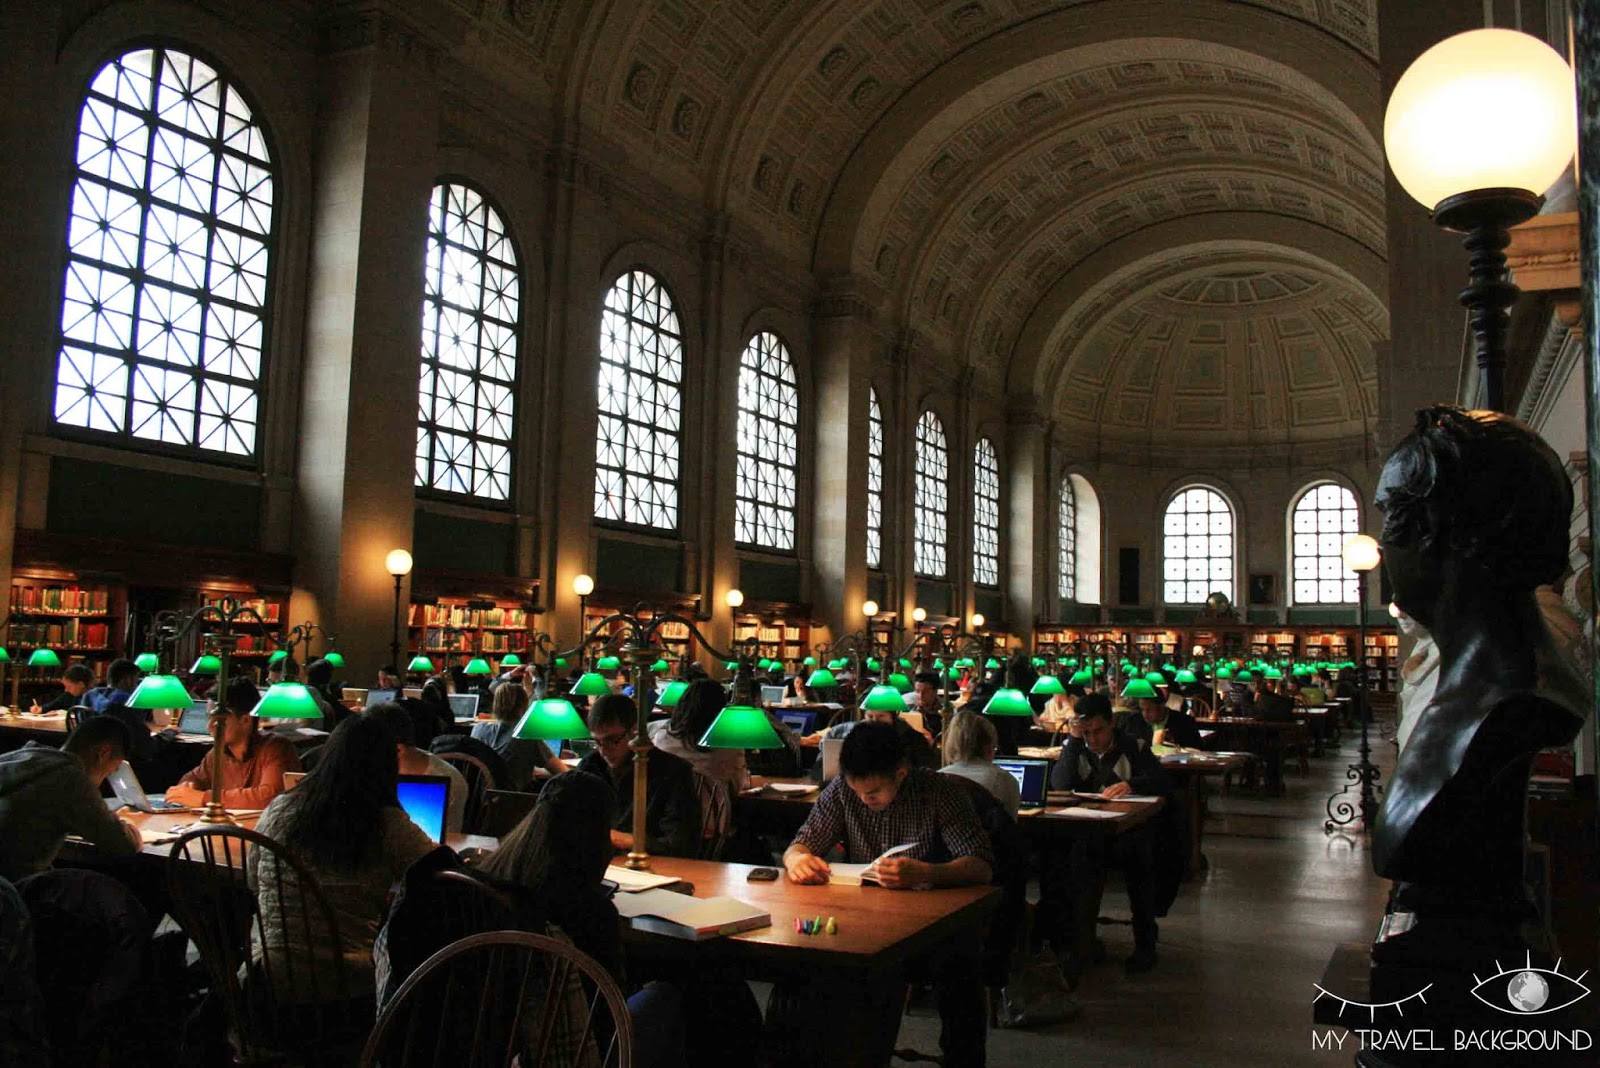 My Travel Background : Boston Public Library